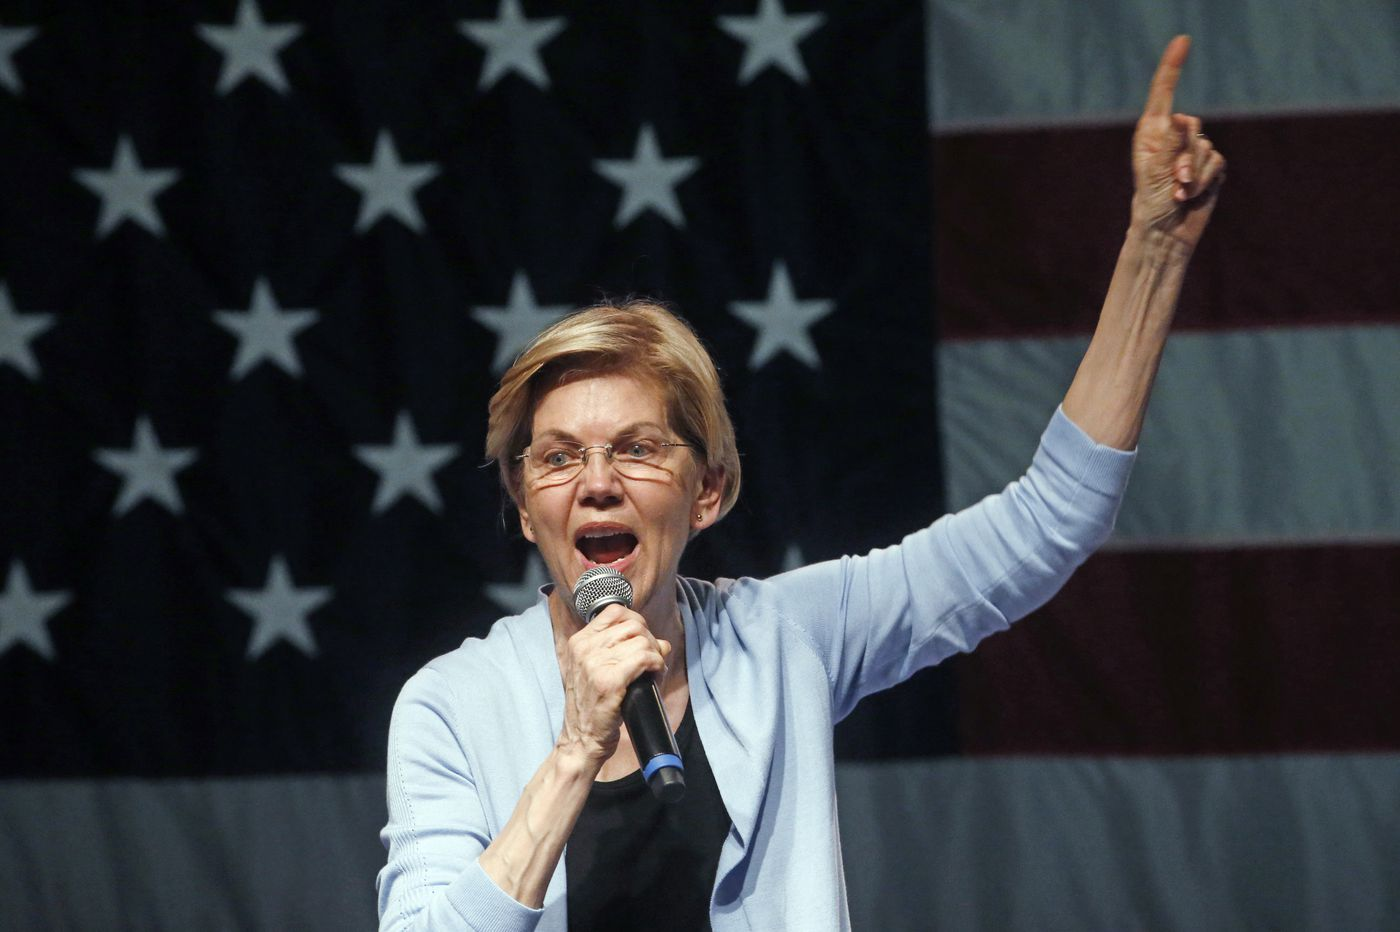 Democratic candidates tackle free college ahead of 2020